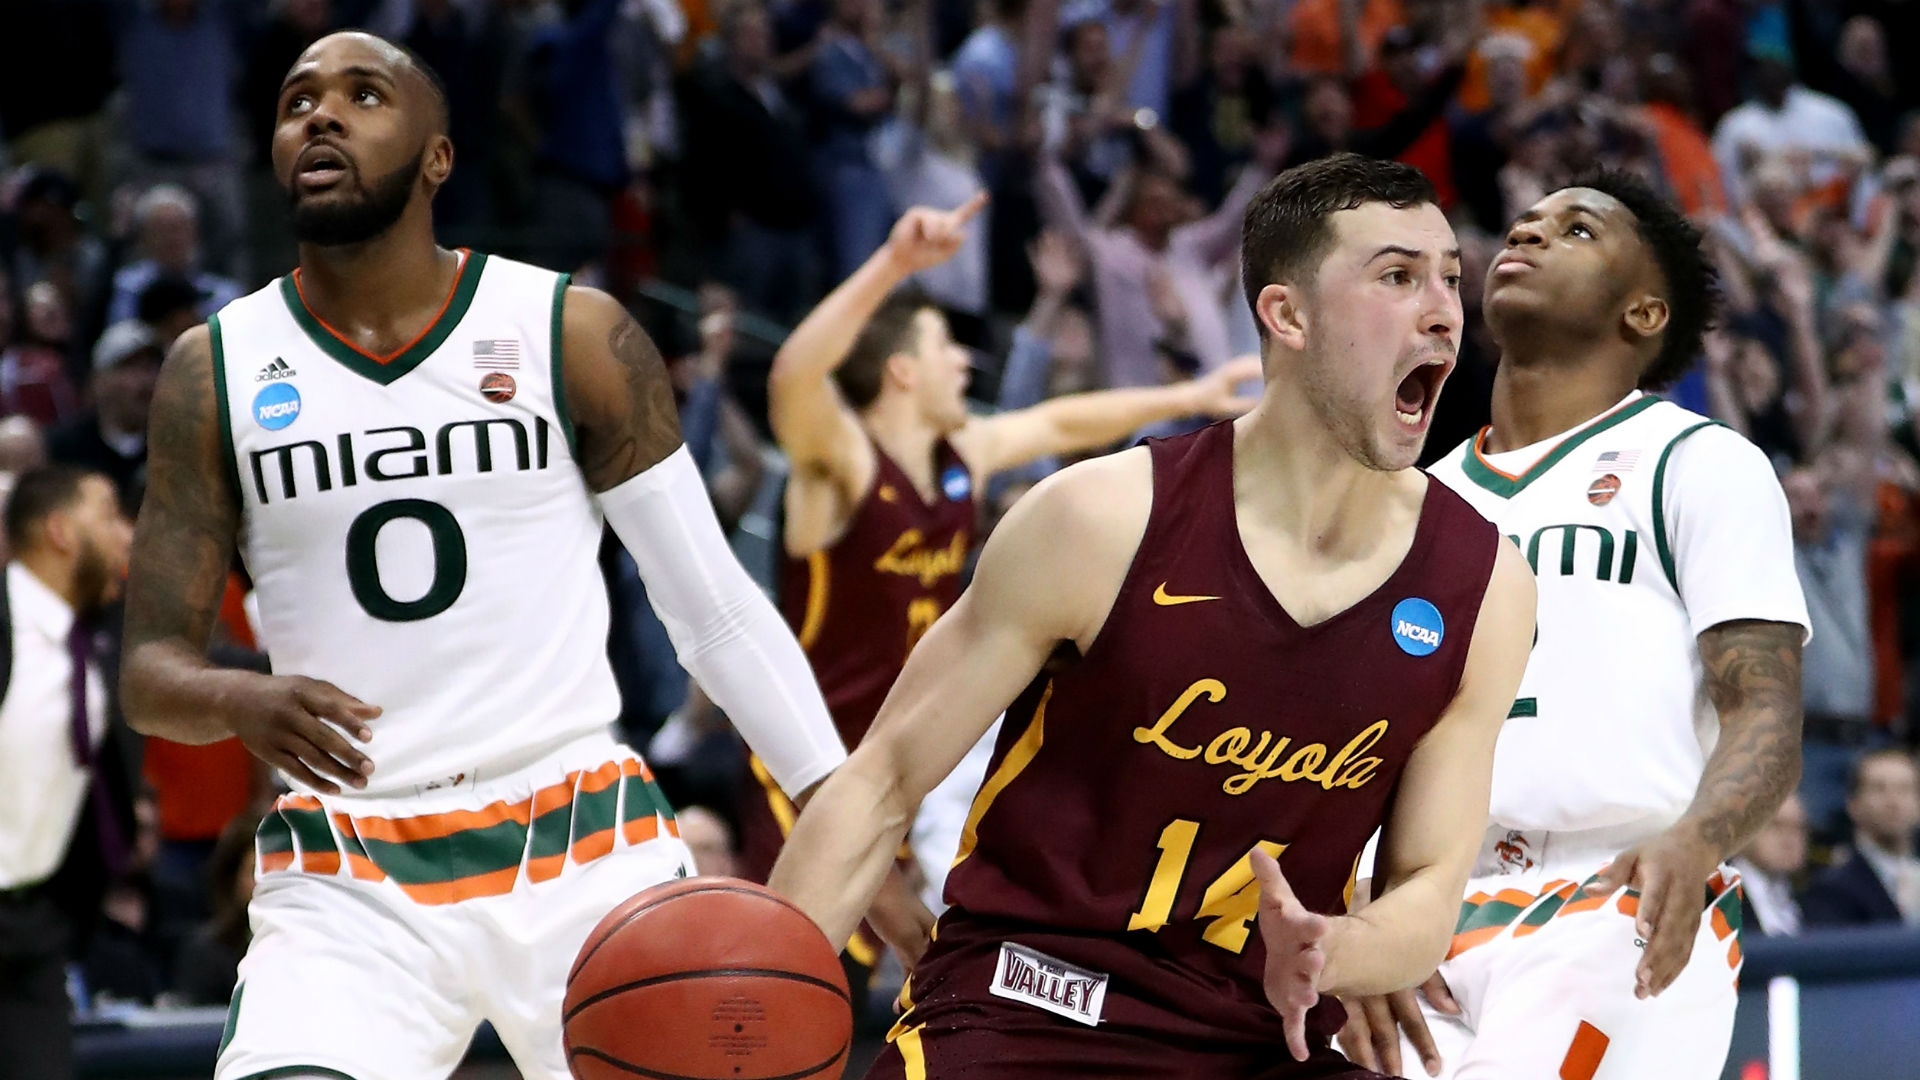 NCAA Predictions: Can Tennessee cover 5.5 vs. Loyola? 3/17/18